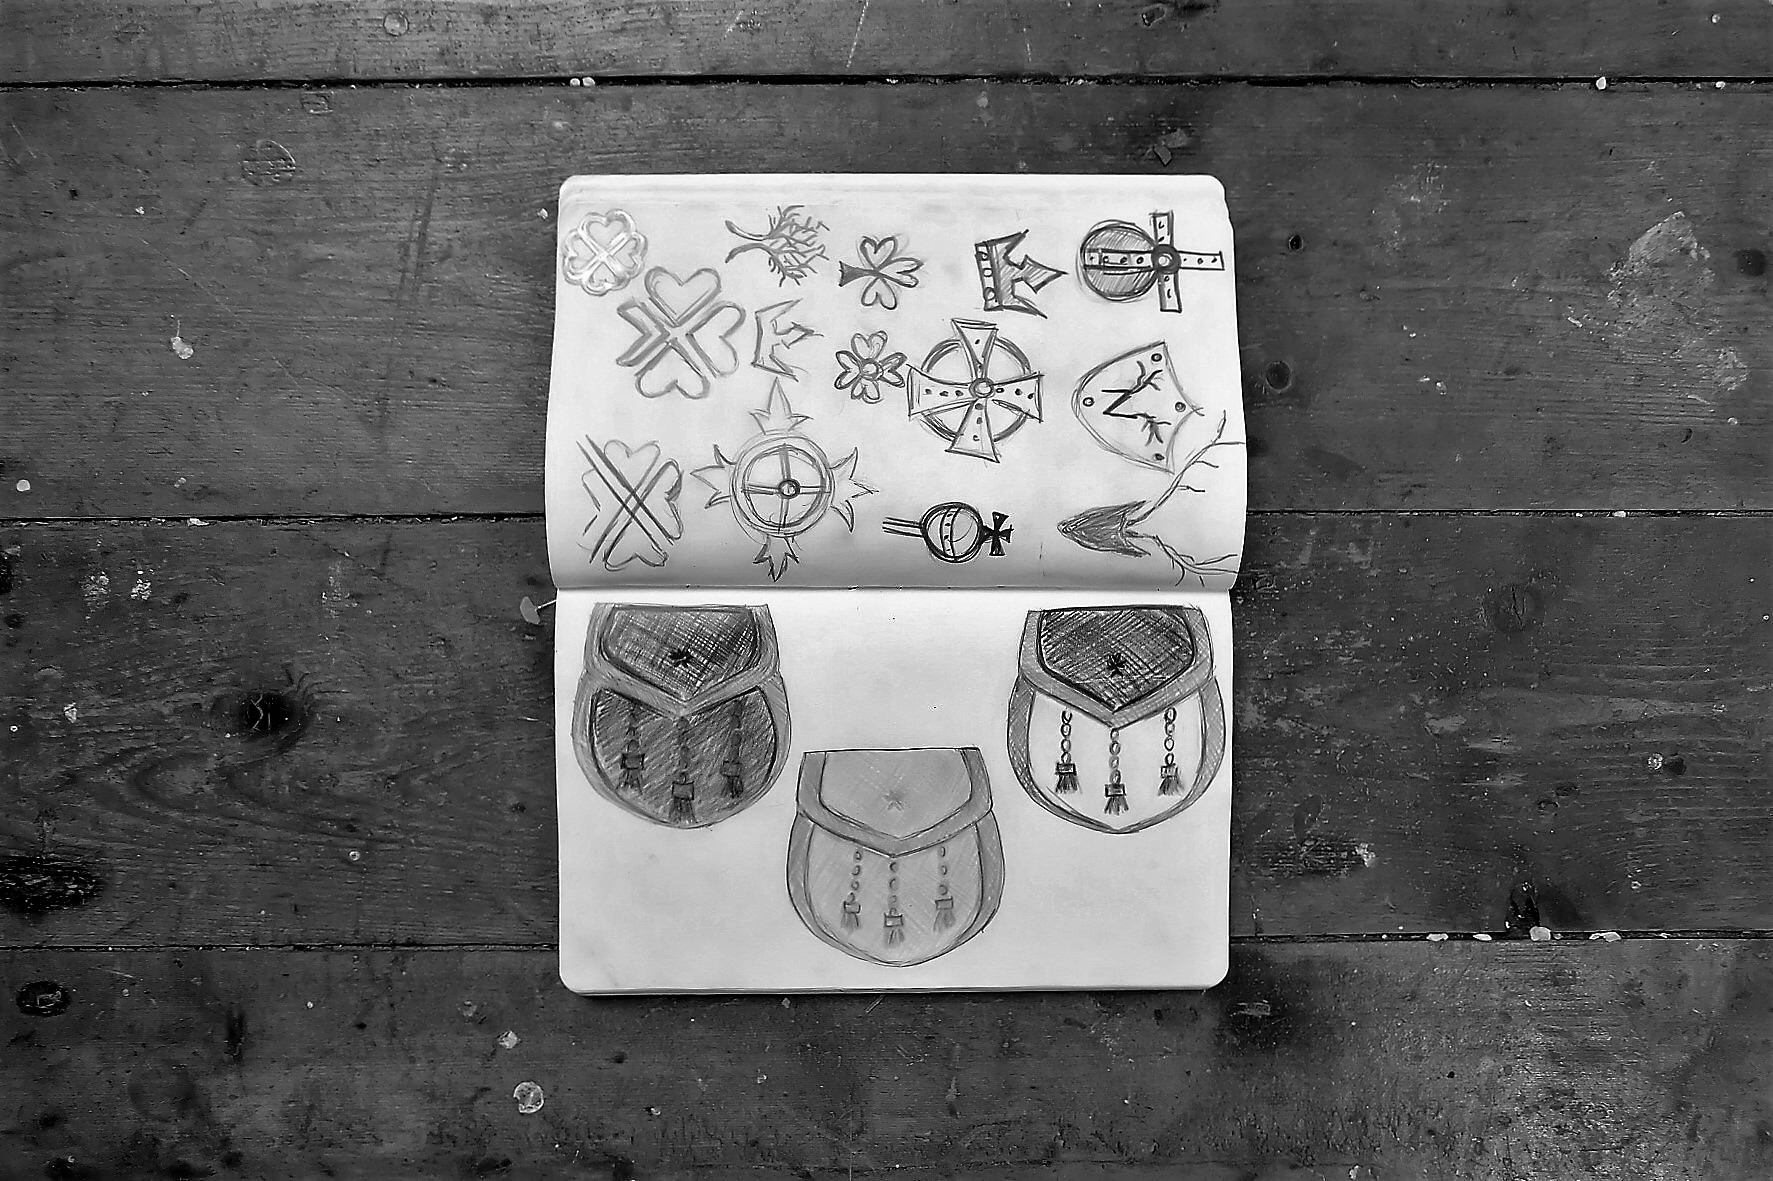 Early sketchbook ideas for logo designs and initial concepts for The 1834 collection.